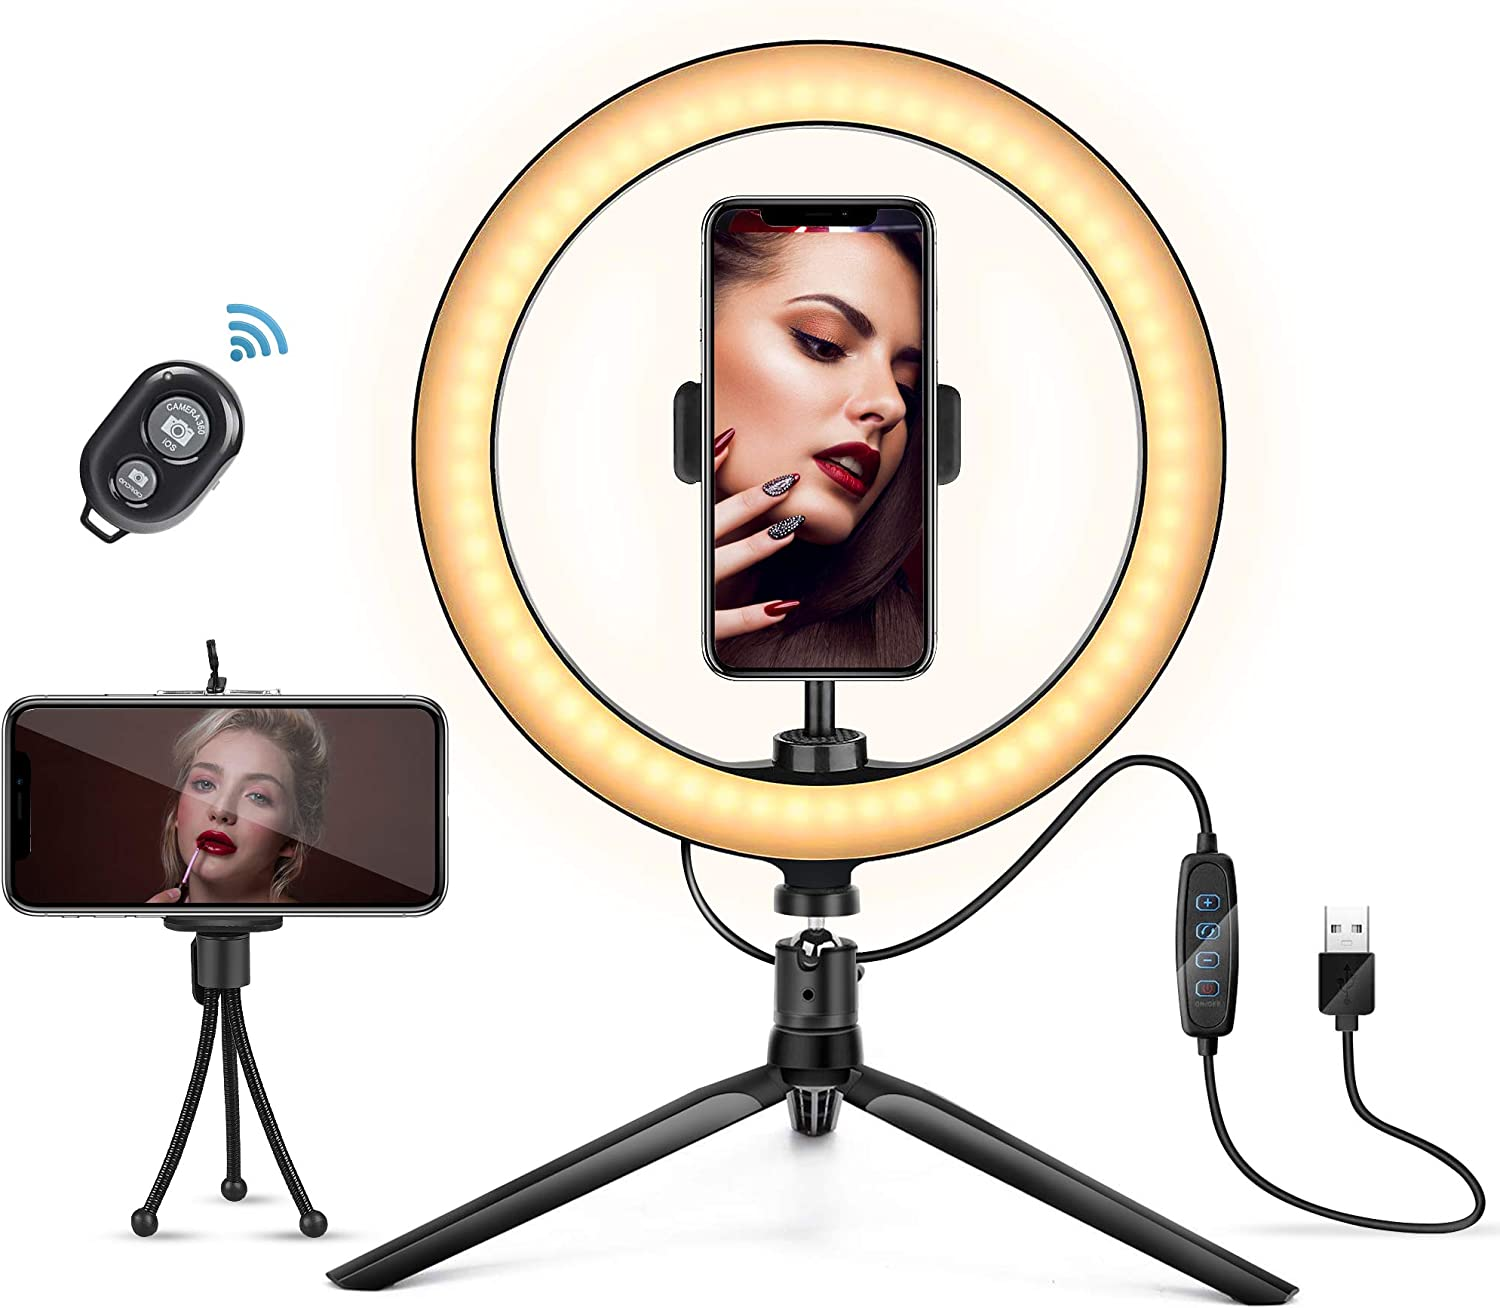 ZHENREN LED Beauty Ringlight Timing 3 Lighting Modes 5 Brightness Circle Light for Photography Makeup Live Stream Vlogging 10 Selfie Ring Light with Tripod Stand Phone Holder and Remote Control